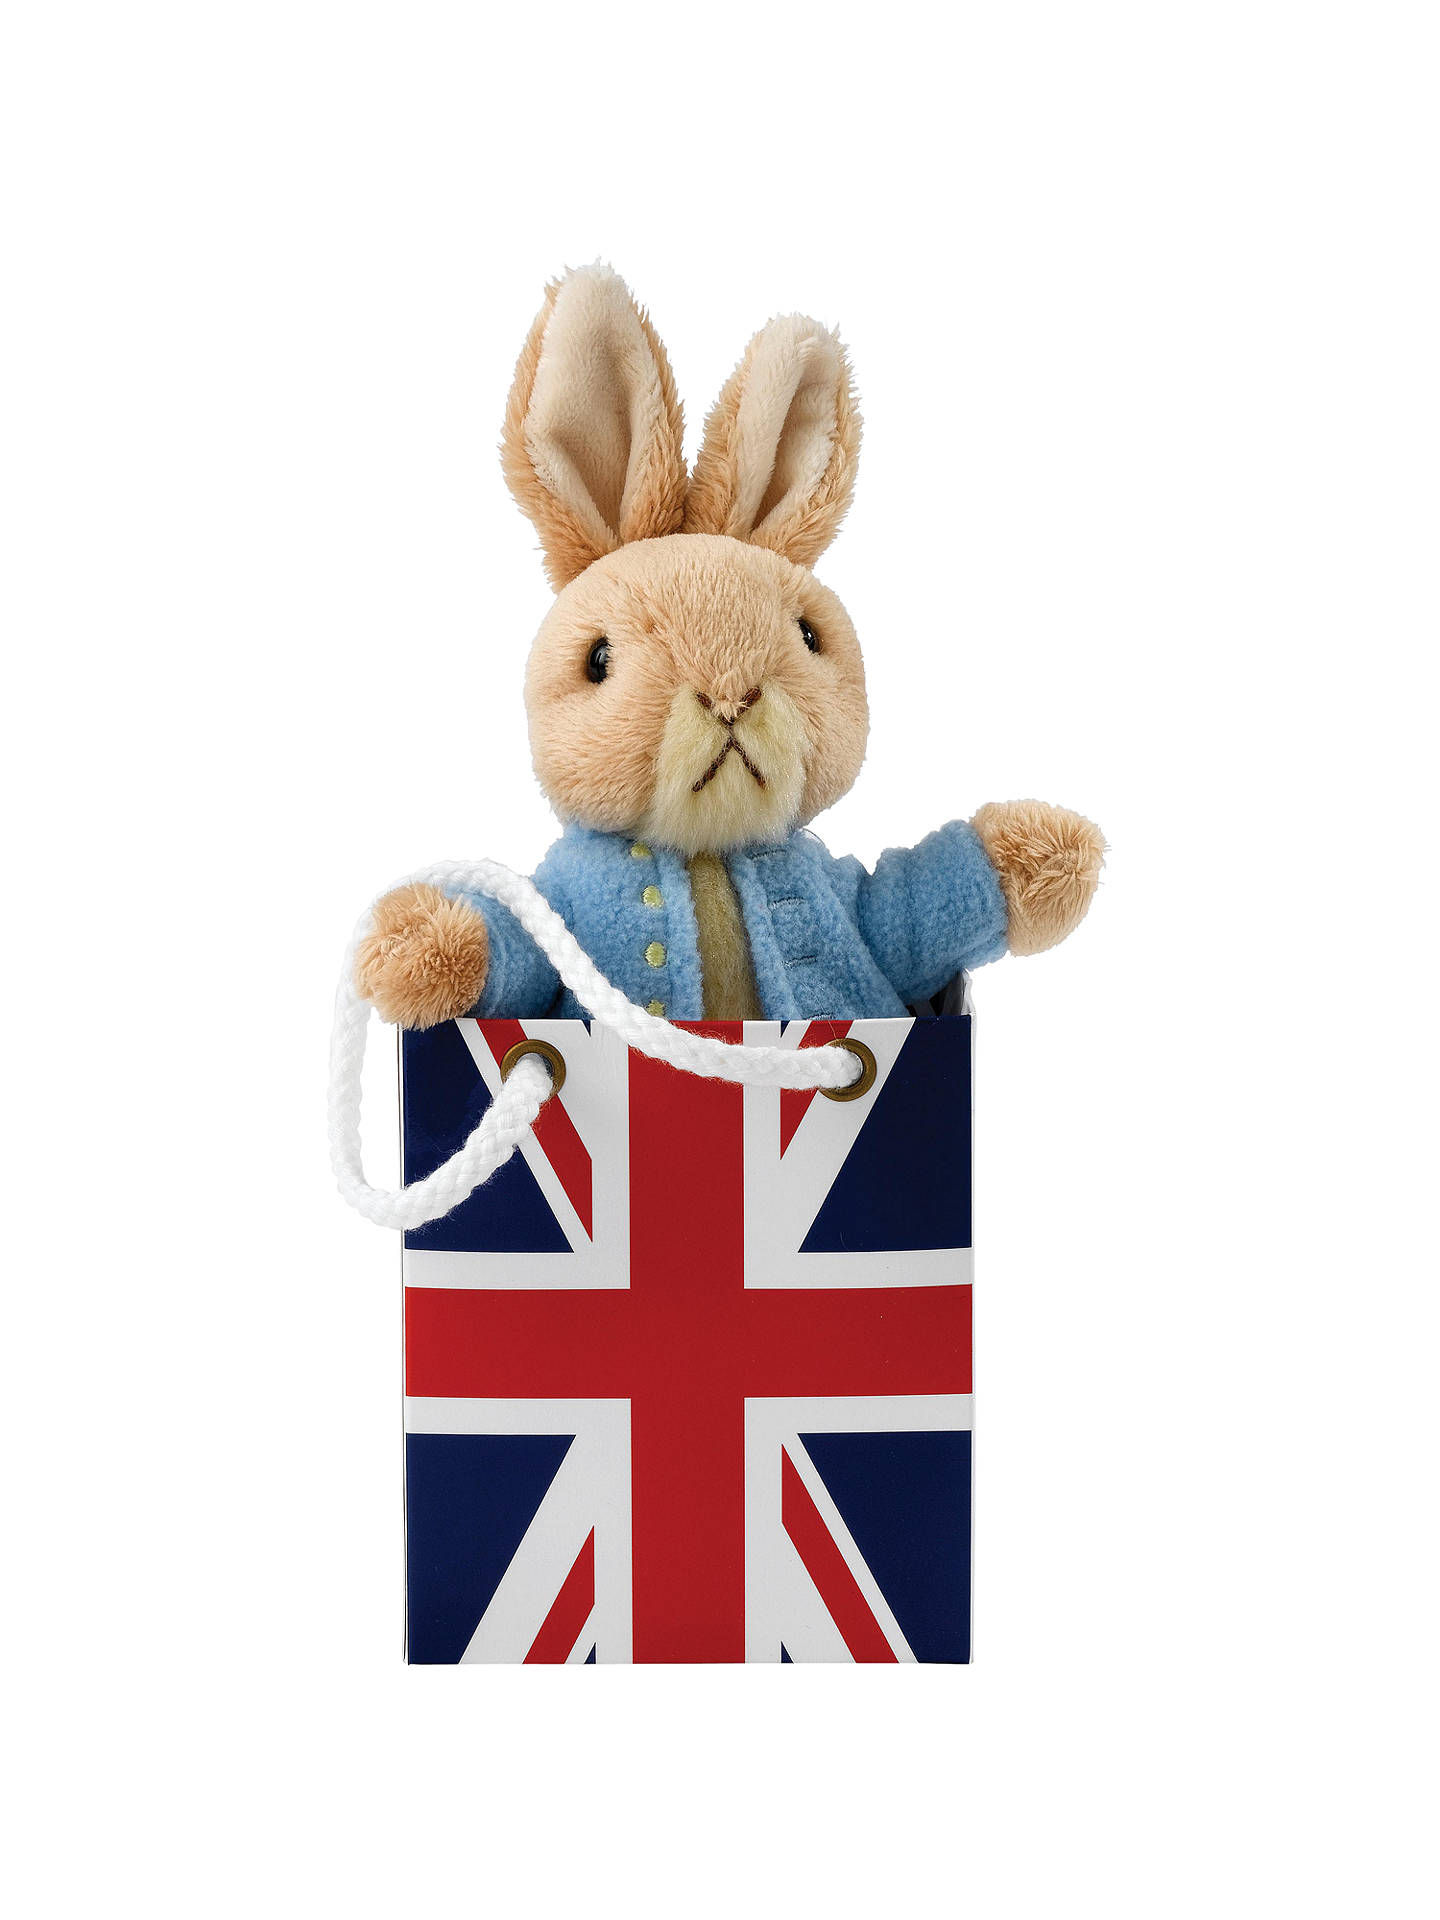 BuyBeatrix Potter Peter Rabbit Union Jack Bag Plush Baby Gift Online at johnlewis.com